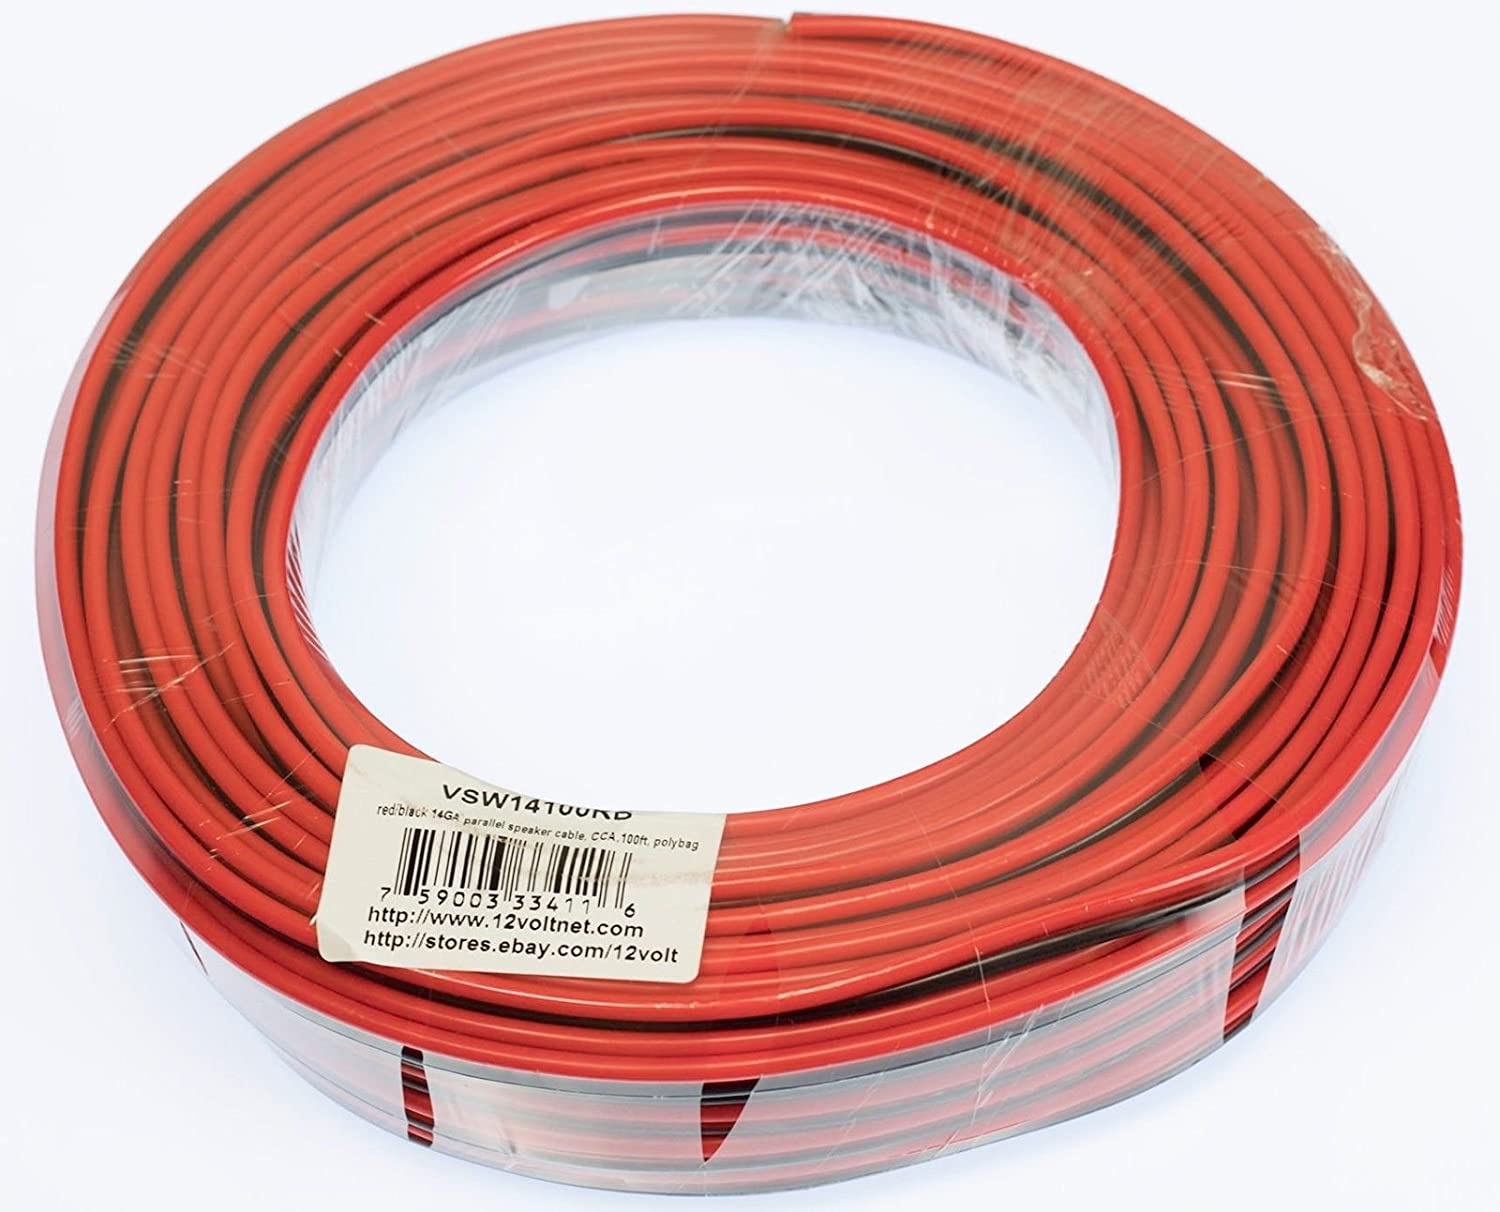 VOODOO 16 AWG Gauge Speaker Wire Cable Car Home Audio Black /& Red Zip Wire 20 FT